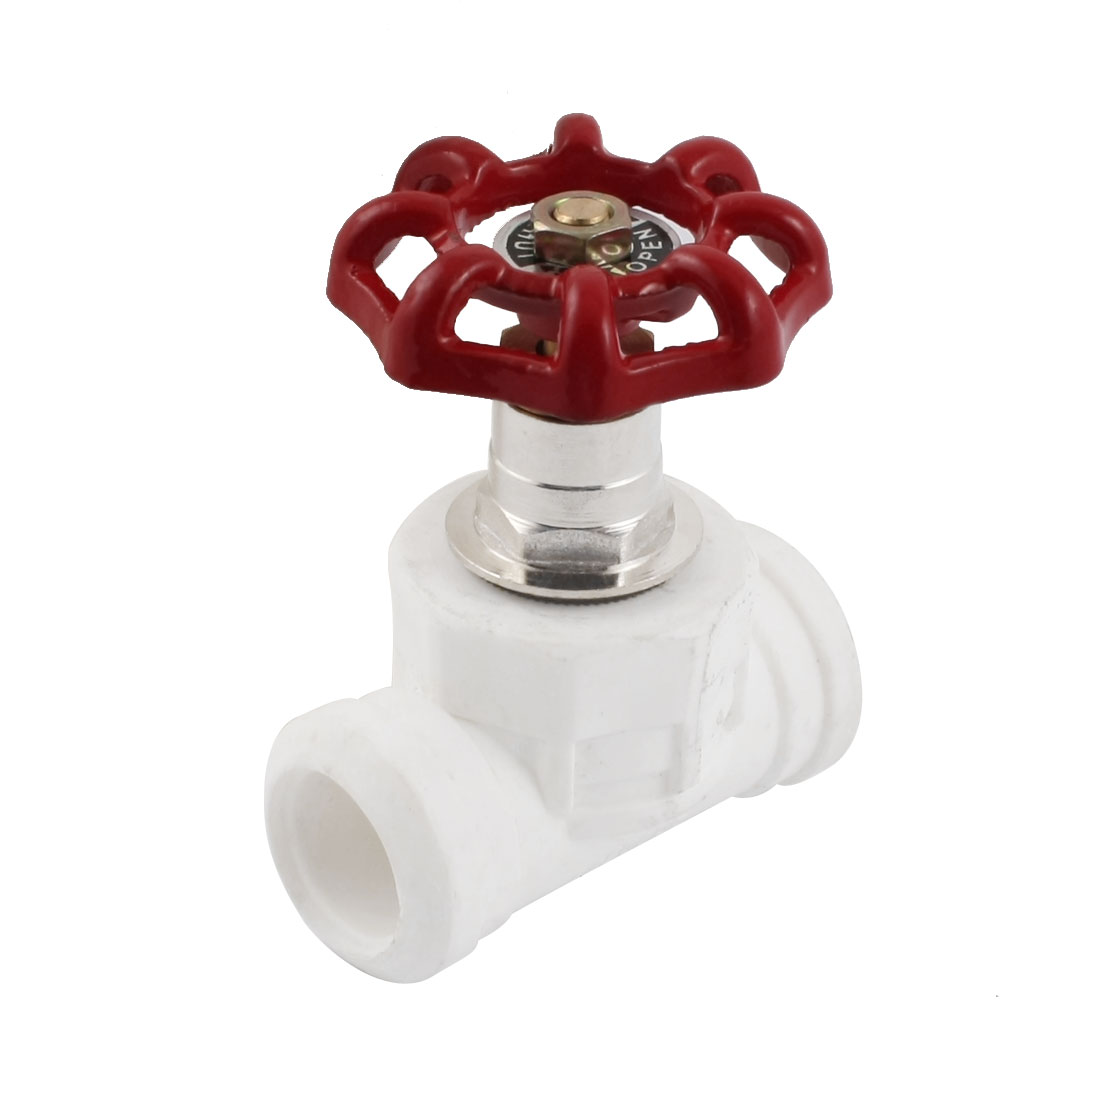 Plumbing 19mm x 19mm Double Way Red Handle PPR Gate Valve